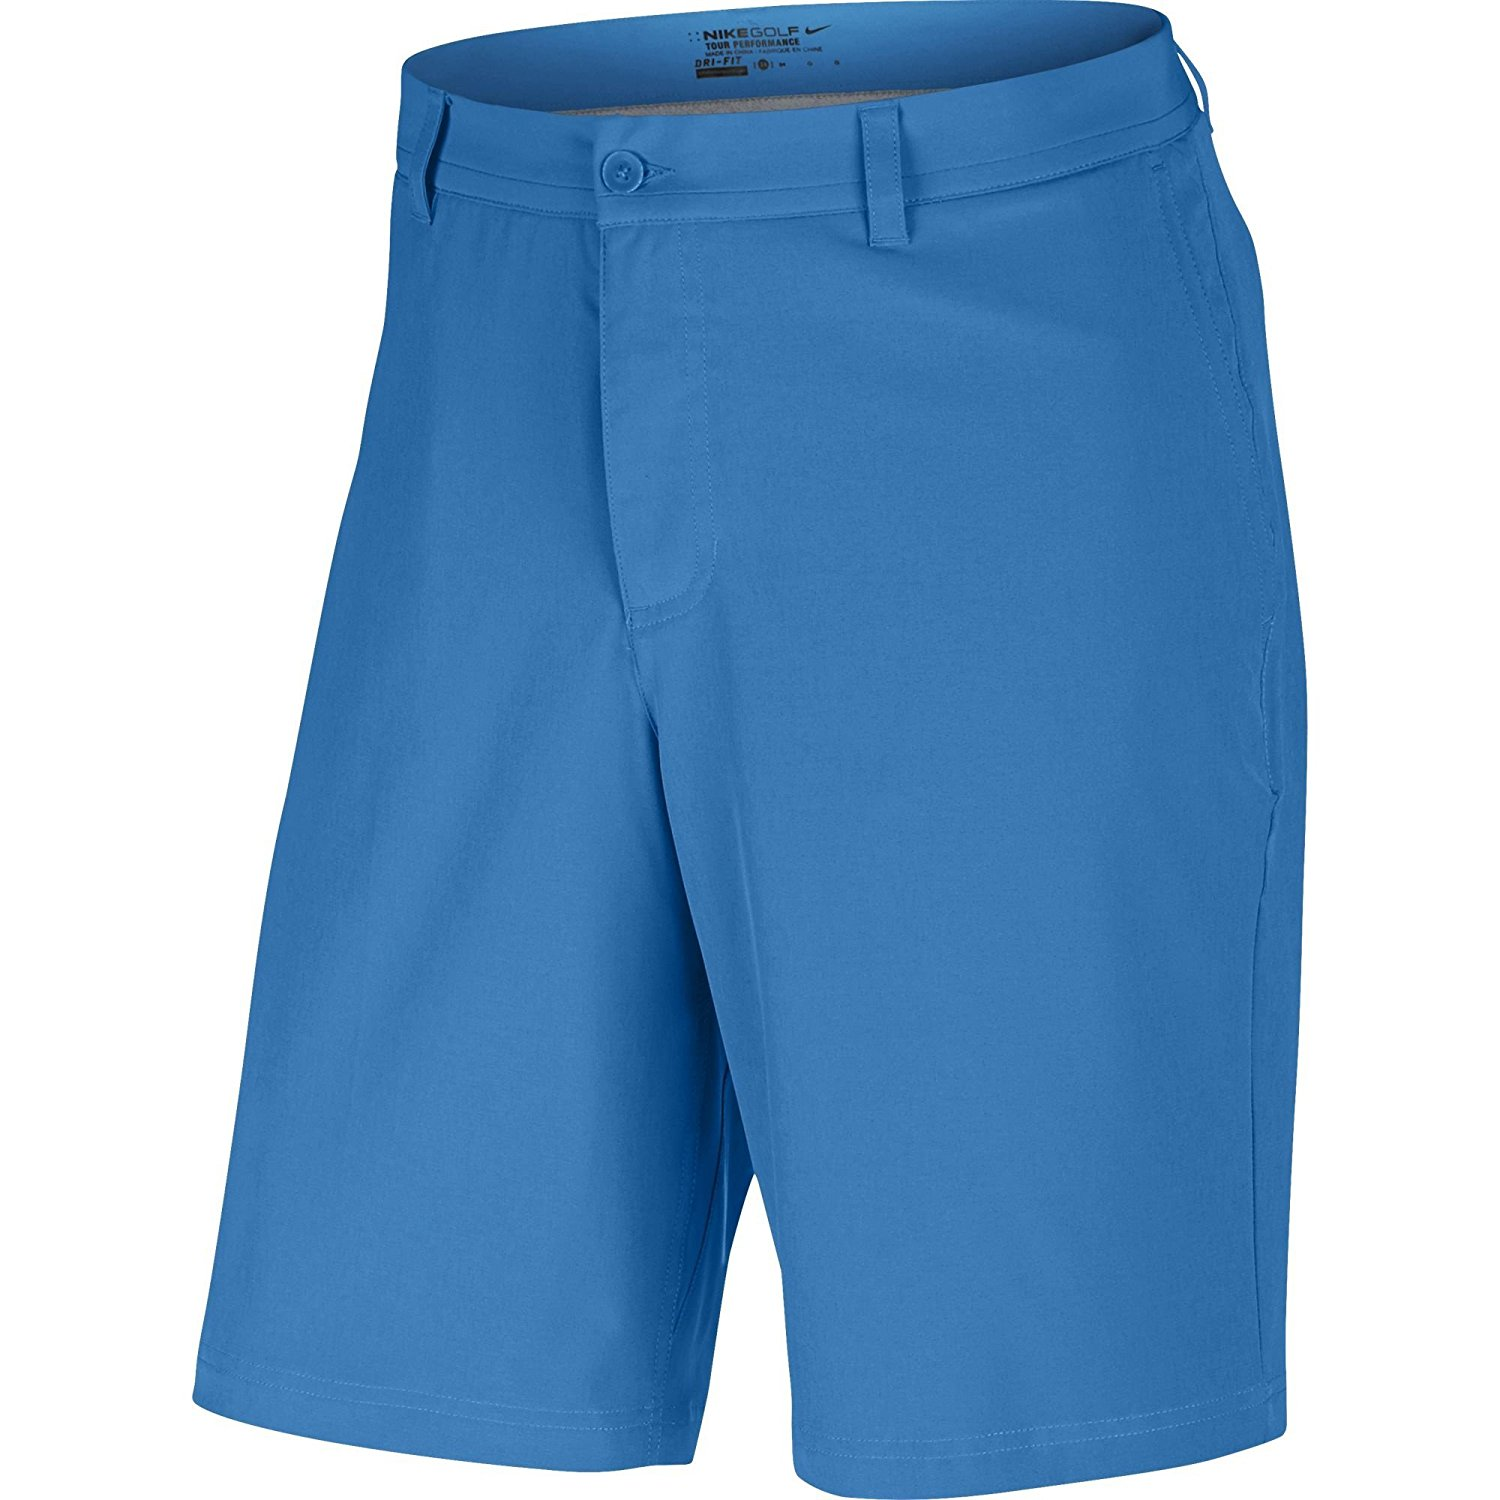 62e5eb393f13 Get Quotations · Nike Men s Flat-Front Stretch-Fabric Golf Shorts